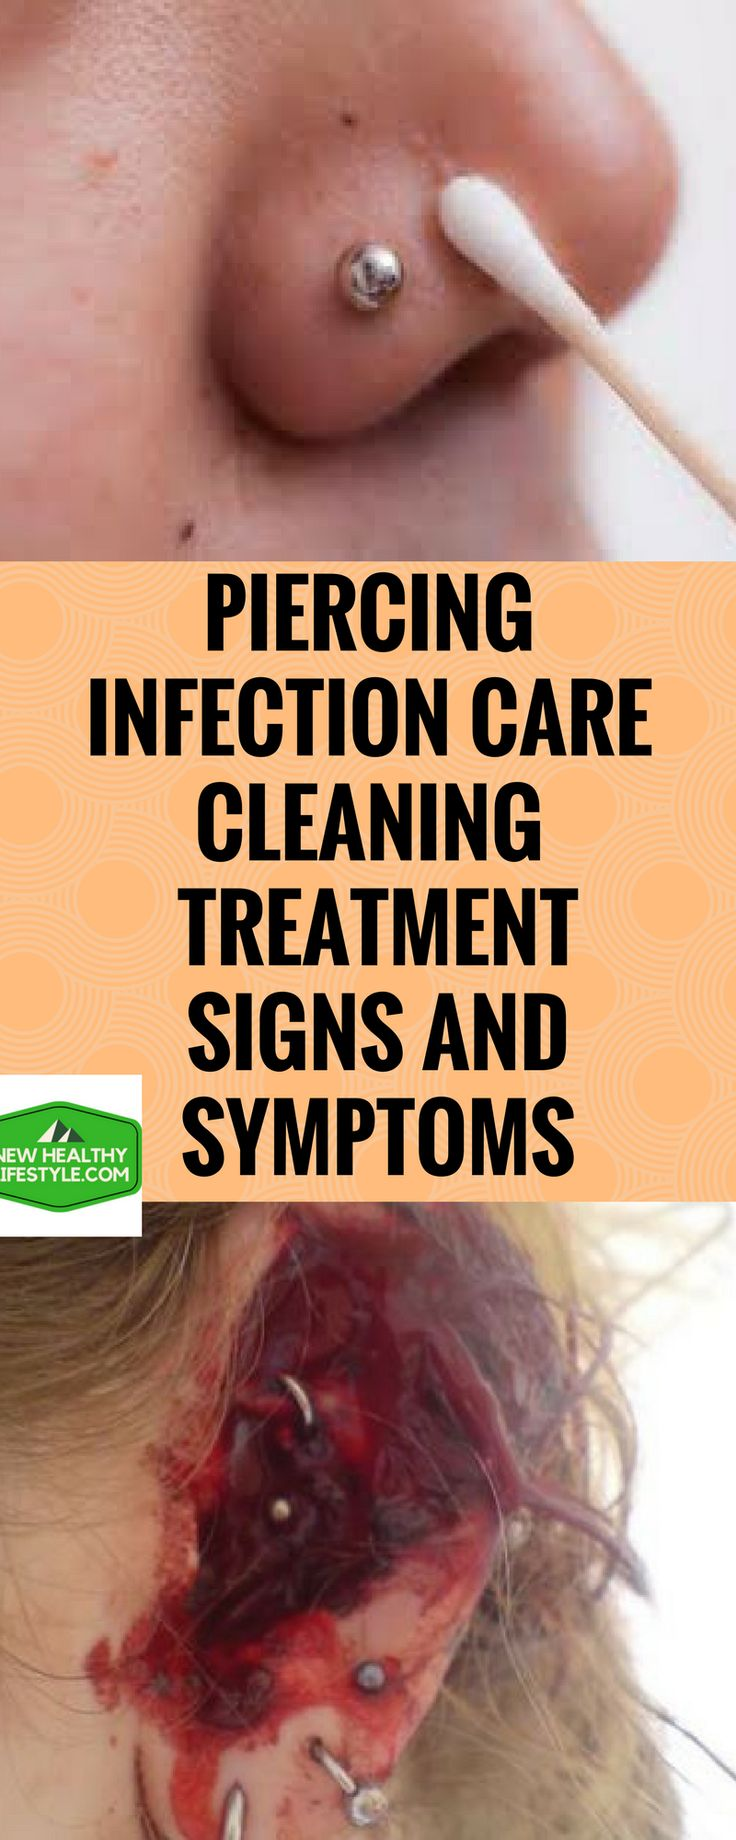 PIERCING INFECTION CARE, CLEANING, TREATMENT, SIGNS AND SYMPTOMS    http://t.umblr.com/redirect?z=http://newhealthylifestyle.info/2017/10/21/piercing-infection-care-cleaning-treatment-signs-and-symptoms/&t=MzgyOTllNjRjN2U3ZTU2YWEyYjEyY2E1MDc0ZmZkMjQ0YTBhOWU2MixKcnVGQ3d4Mg==&b=t:Poru5MZzsR4-2bSsunHSig&p=https://majatodorovska12345.tumblr.com/post/166639141967/piercing-infection-care-cleaning-treatment&m=1